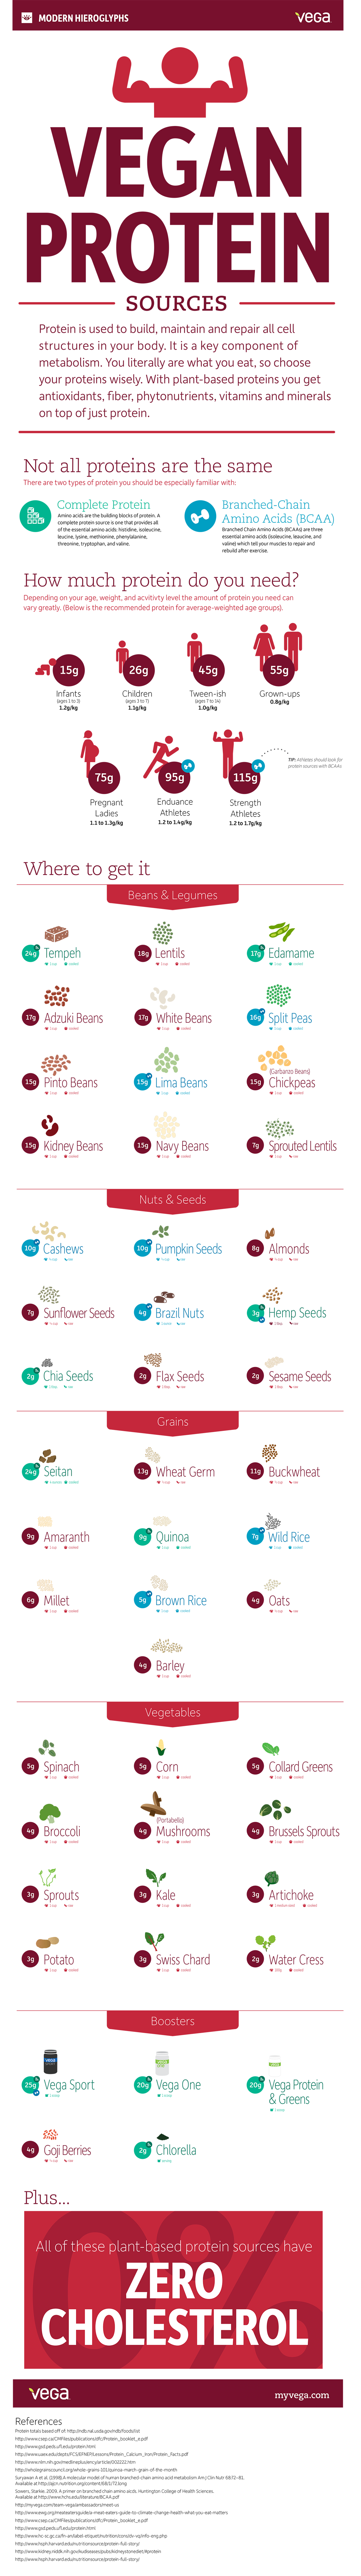 Best Vegan Protein Sources Infographic In